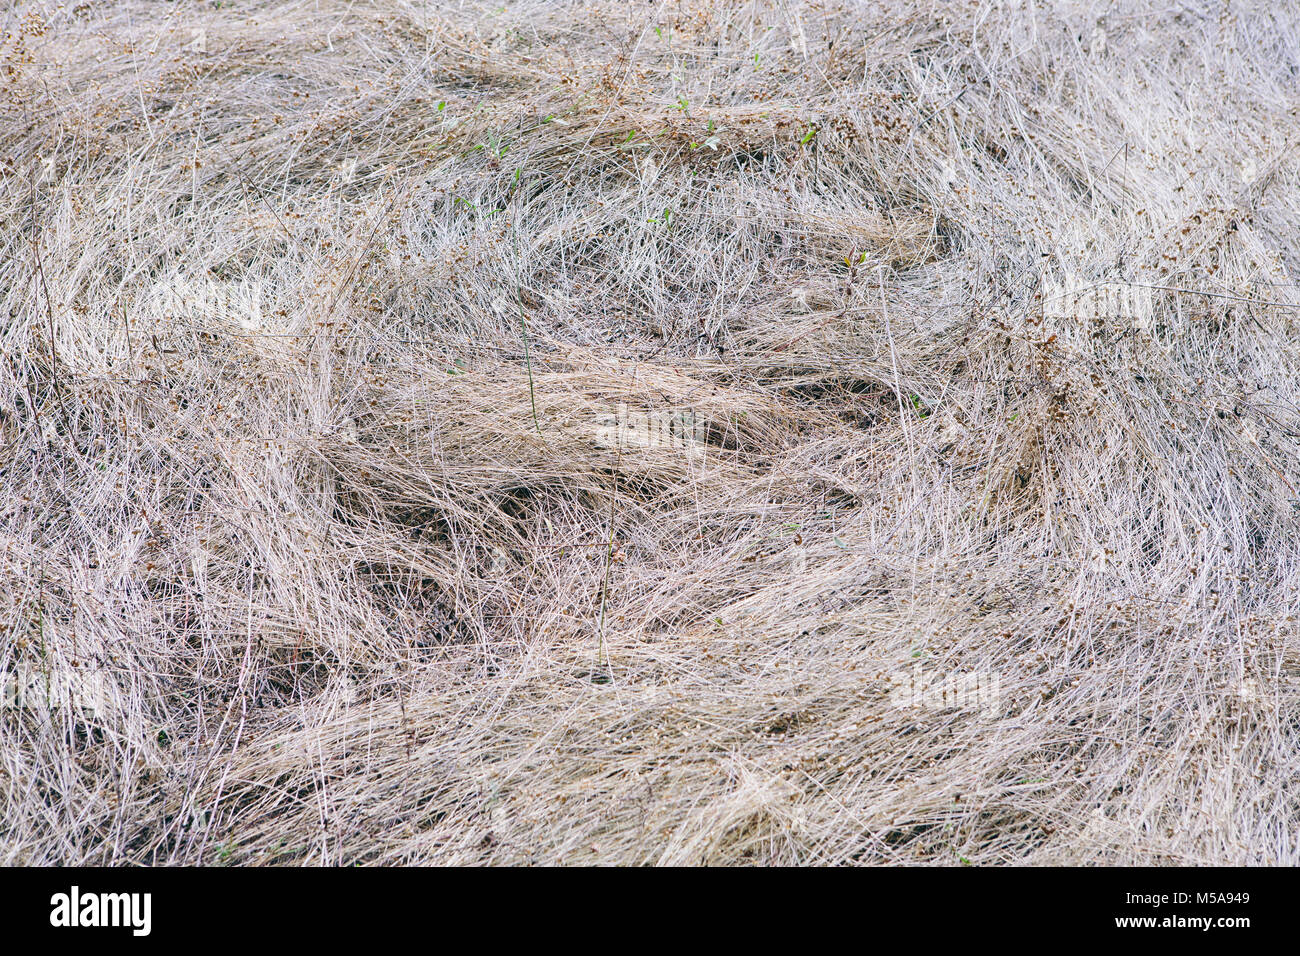 High angle view of swirls of dry grass. - Stock Image